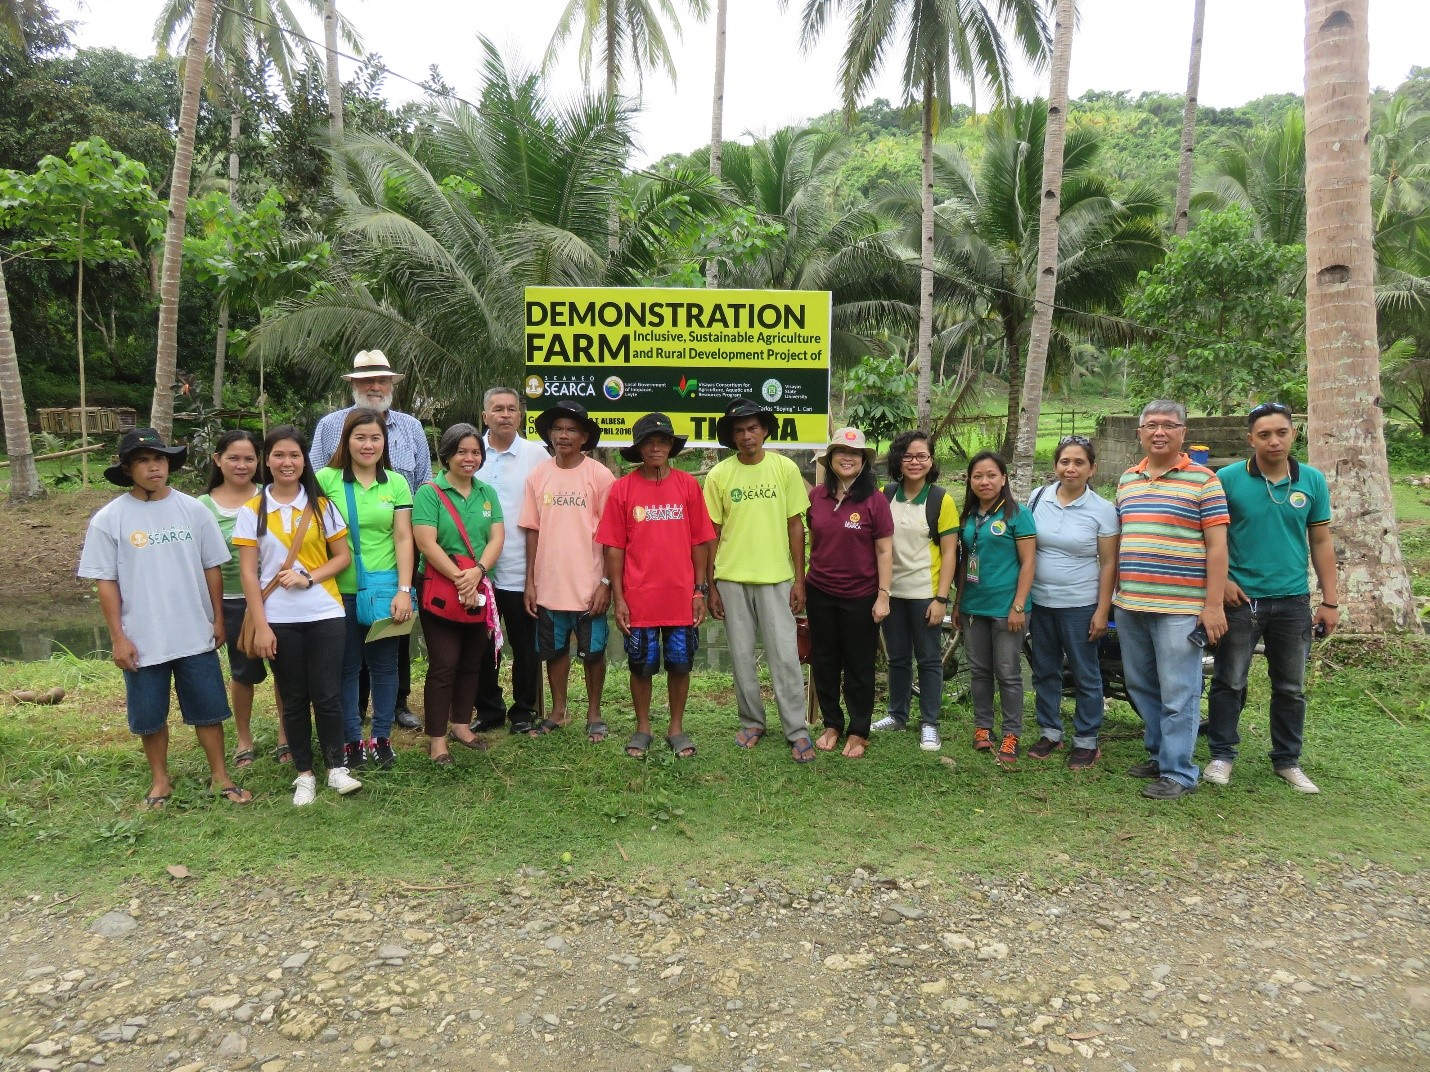 ISARD Growers, LGU Inopacan ISARD Team, VSU ISARD Team, and SEARCA ISARD Team in a Tilapia Fishpond Demonstration Farm with Dr. Friedhelm Göltenboth the father of rainforestation.